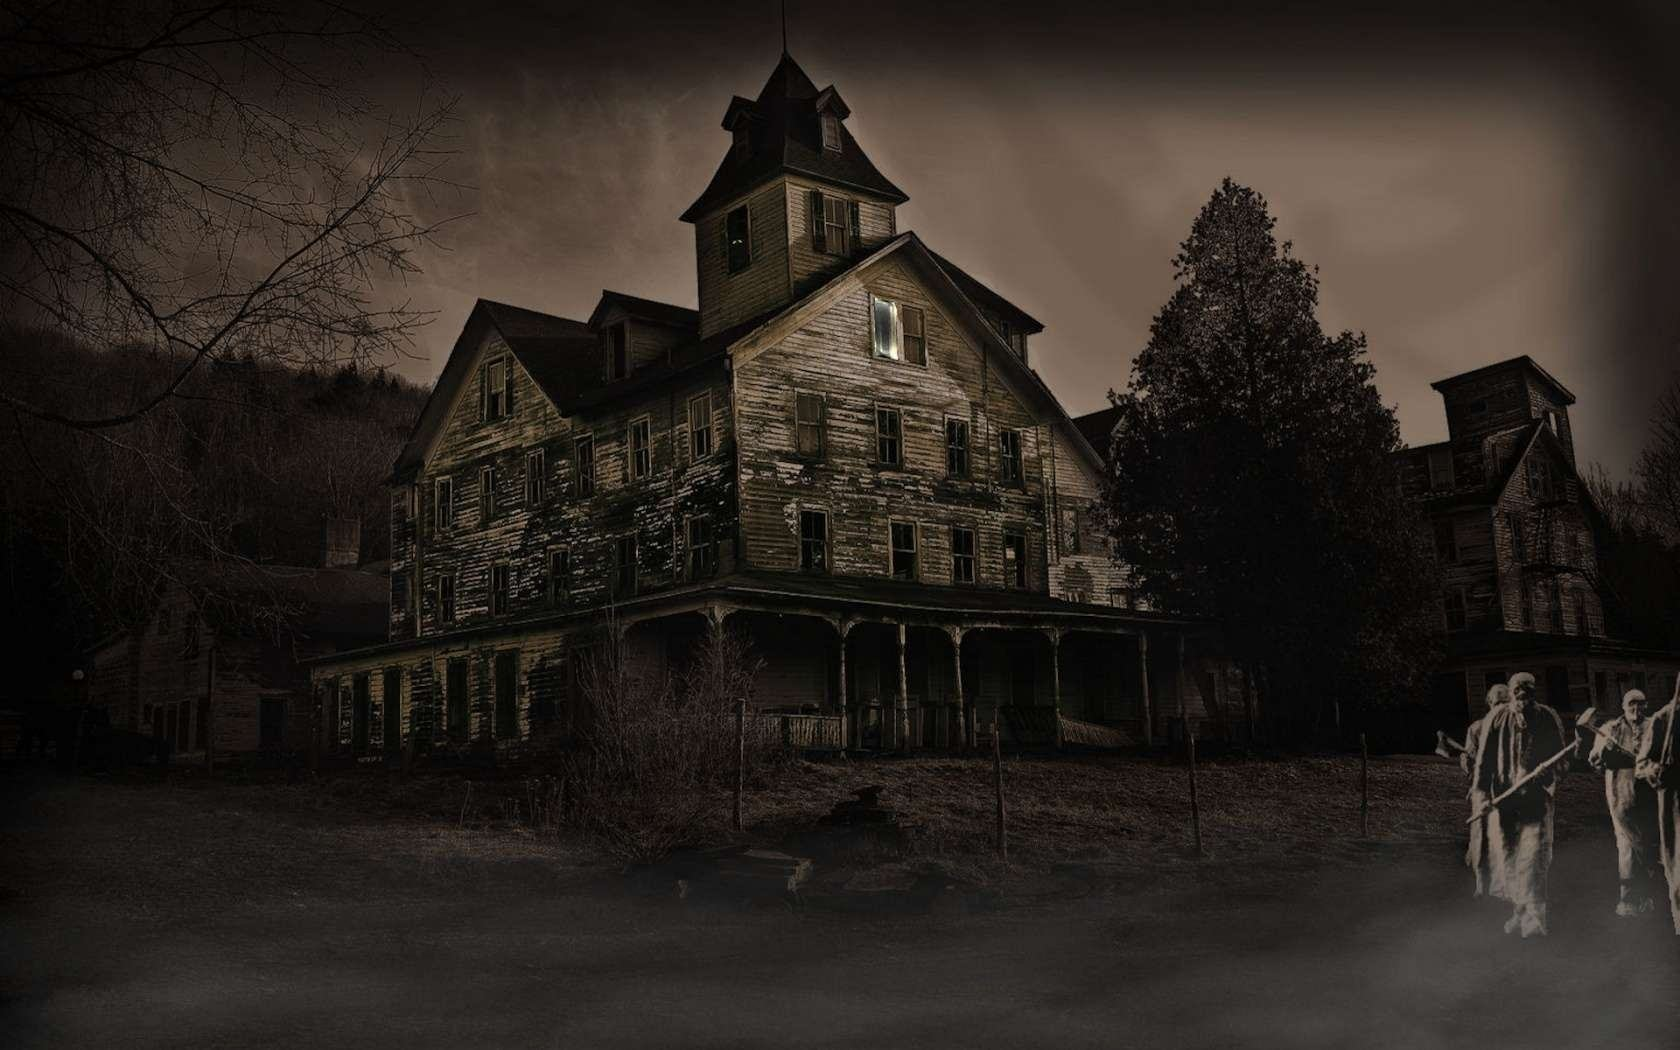 Haunted House Wallpaper 1680 x HD Wallpapers Backgrounds haunte 1680x1050